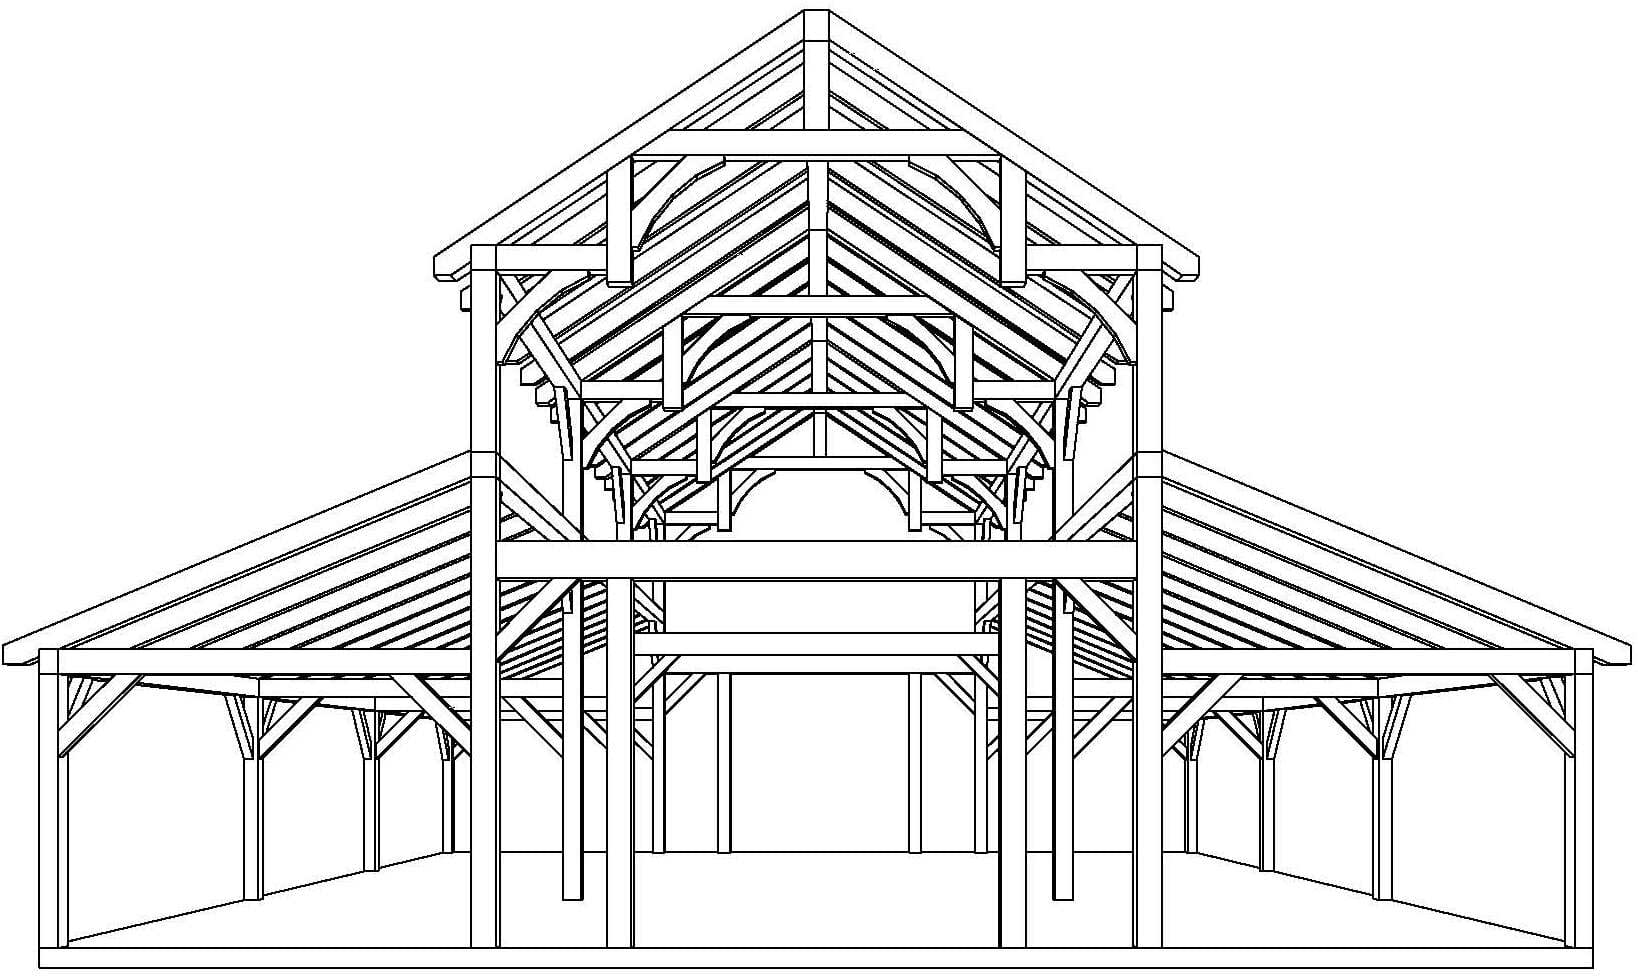 Equipment barn in tx with hemlock frame and curved braces for Barn plans